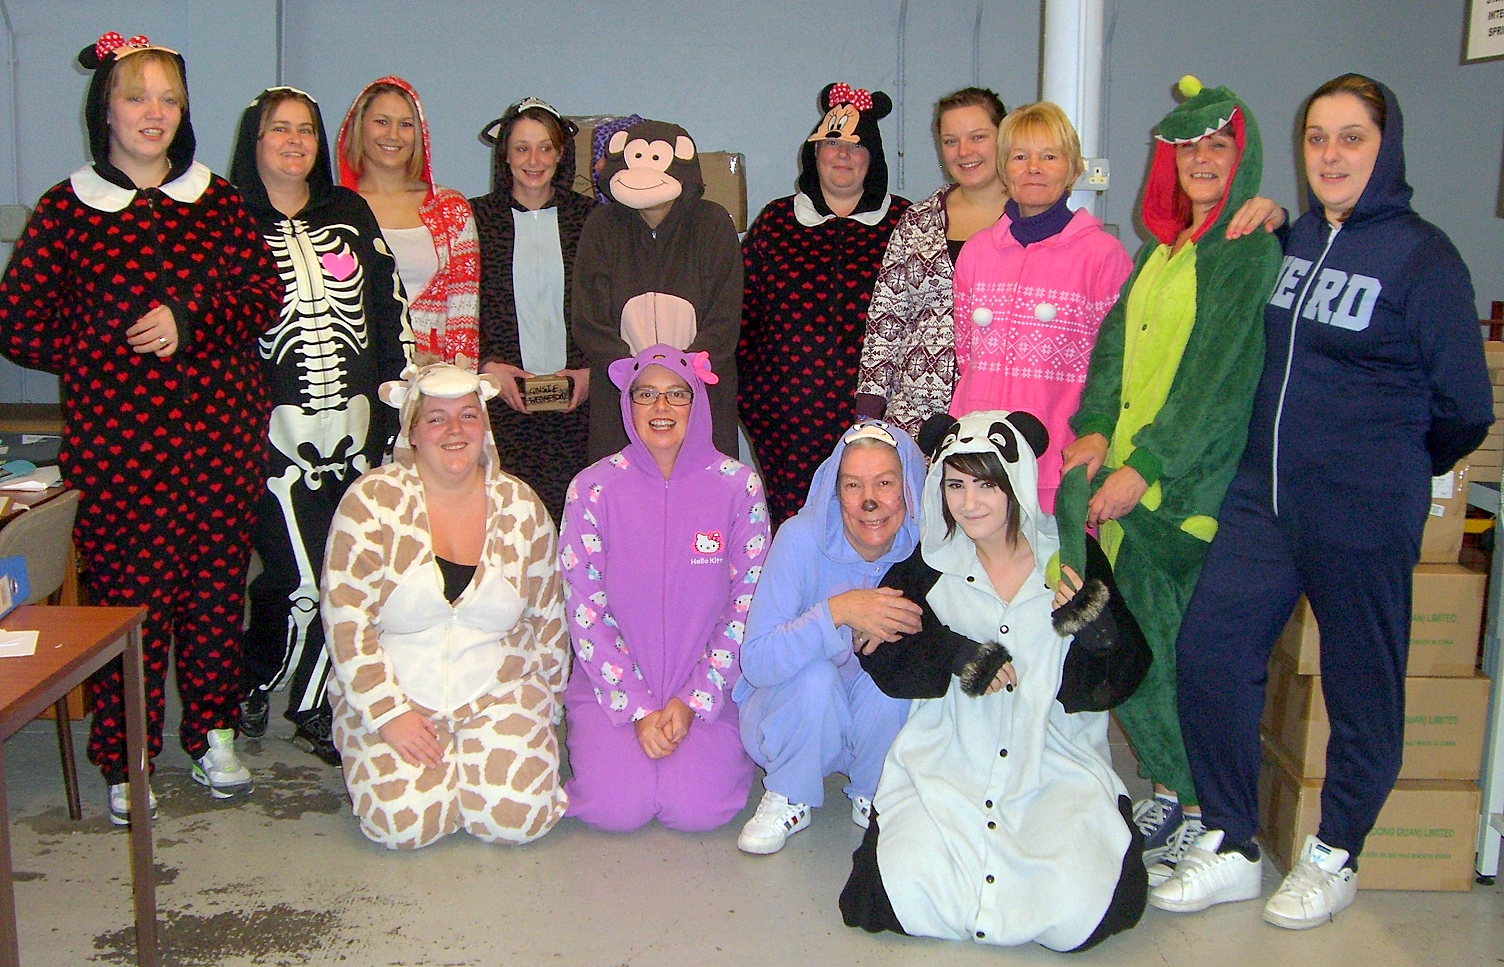 Staff at NSF Controls Ltd in Keighley take part in the Onesie Wednesday to raise funds